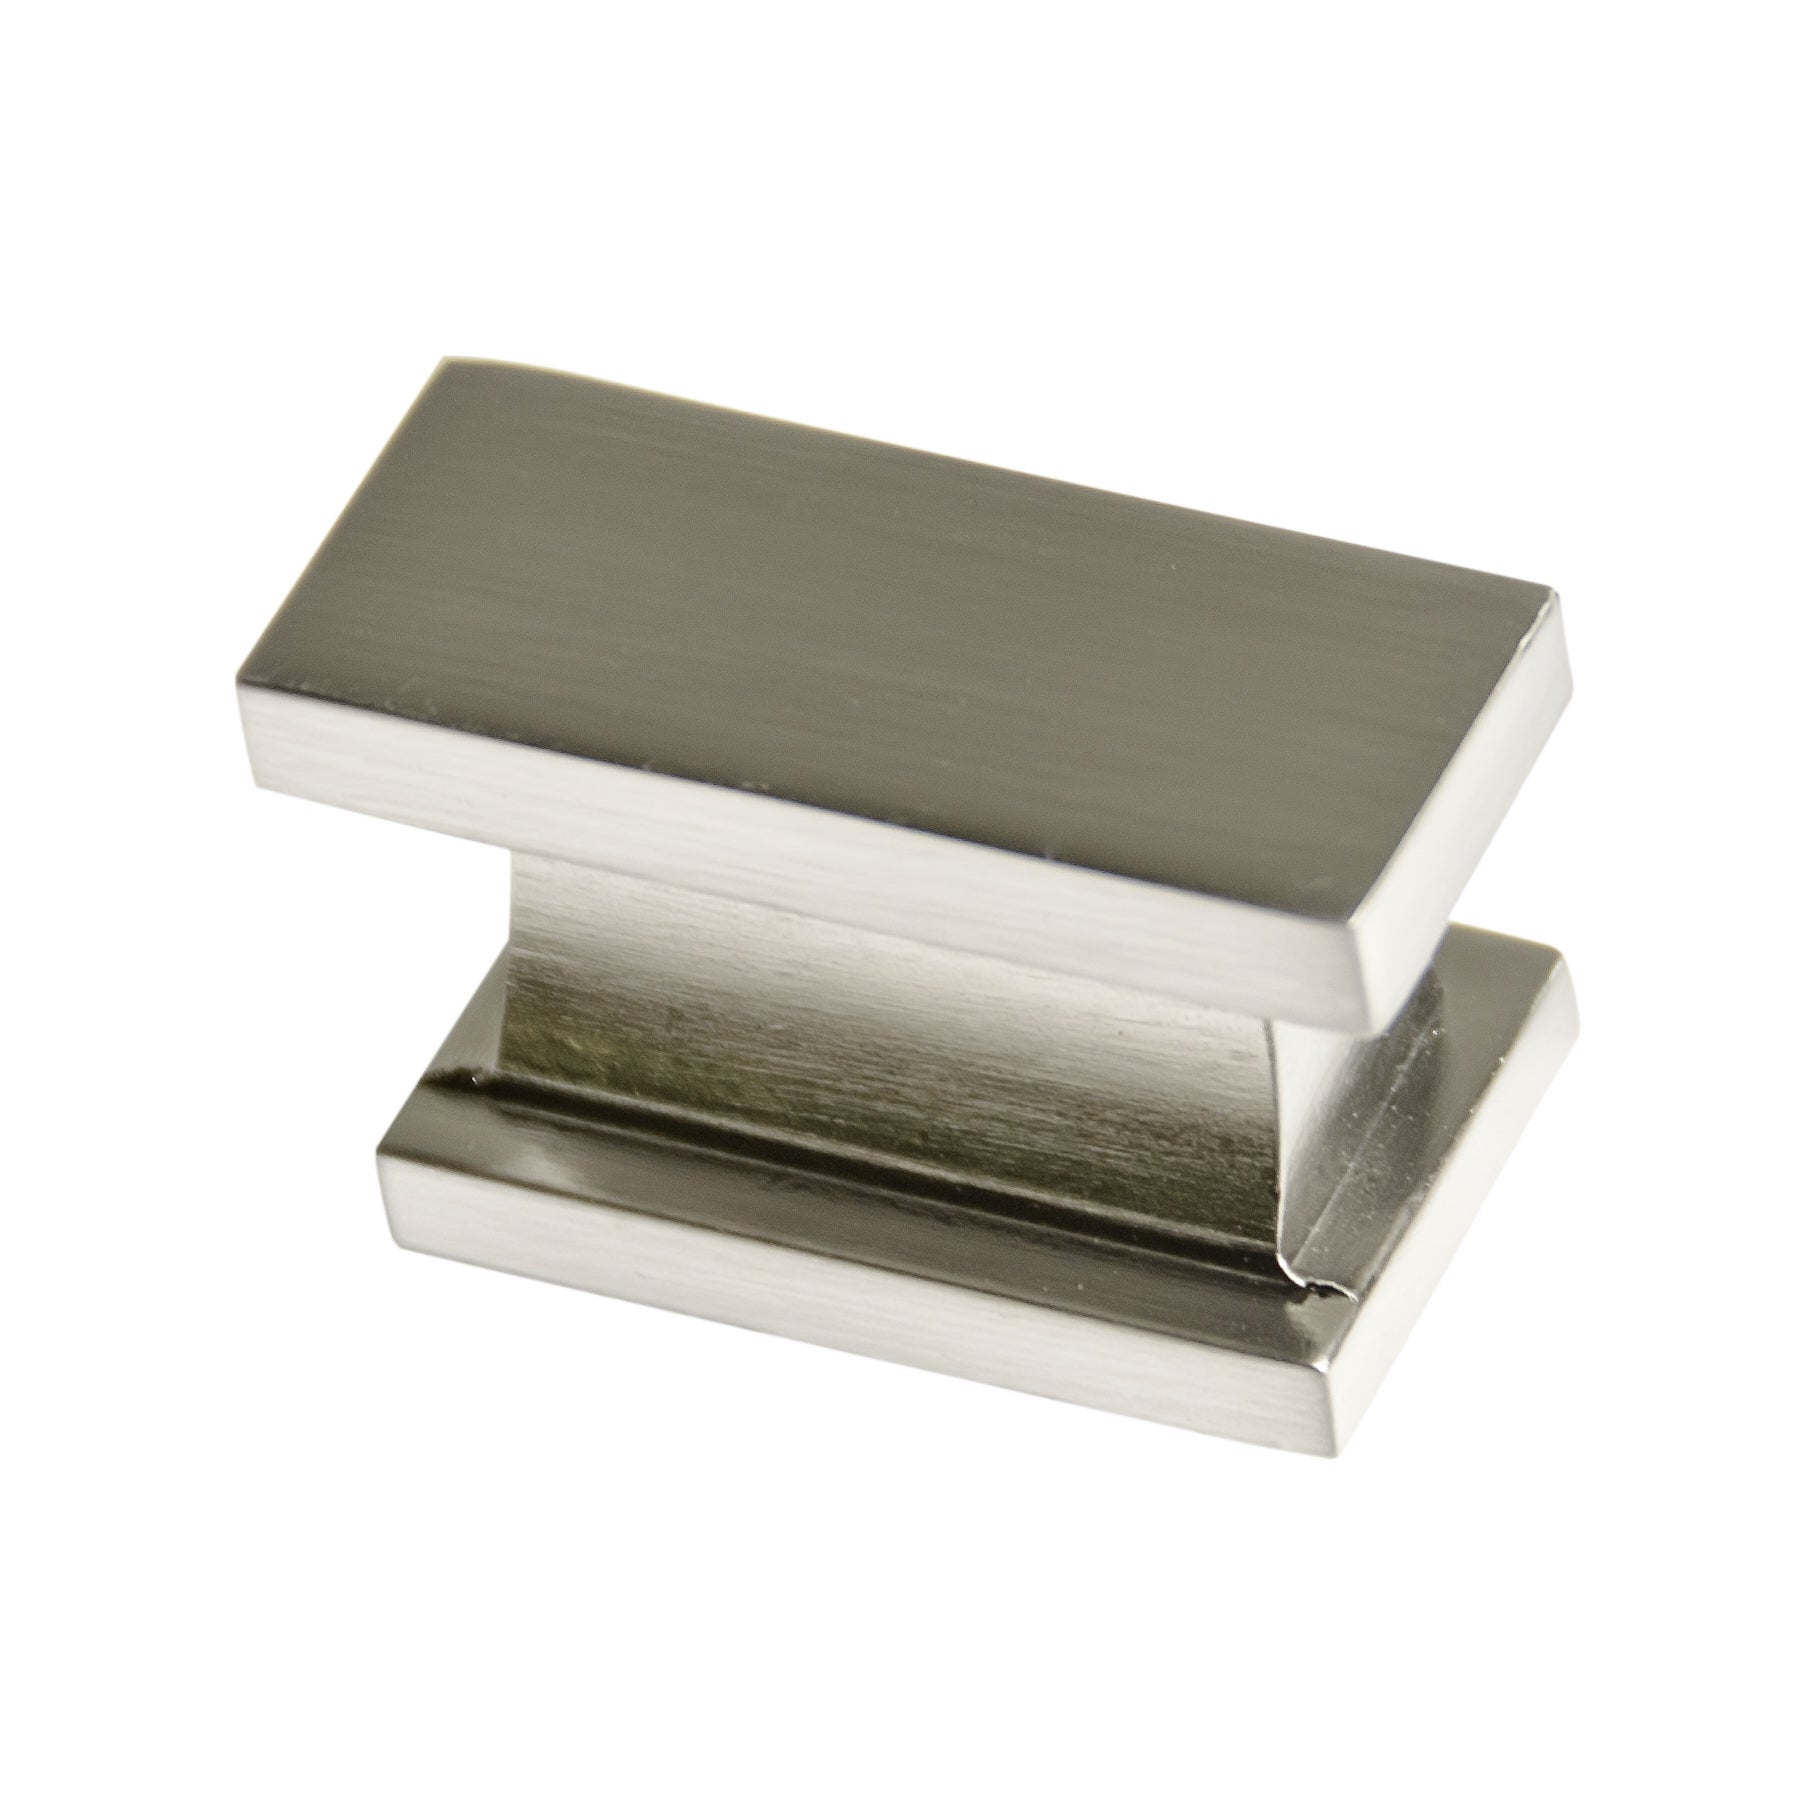 Charmant Shop Southern Hills Satin Nickel Rectangular Cabinet Knobs (Pack Of 10)    Free Shipping On Orders Over $45   Overstock.com   8096044